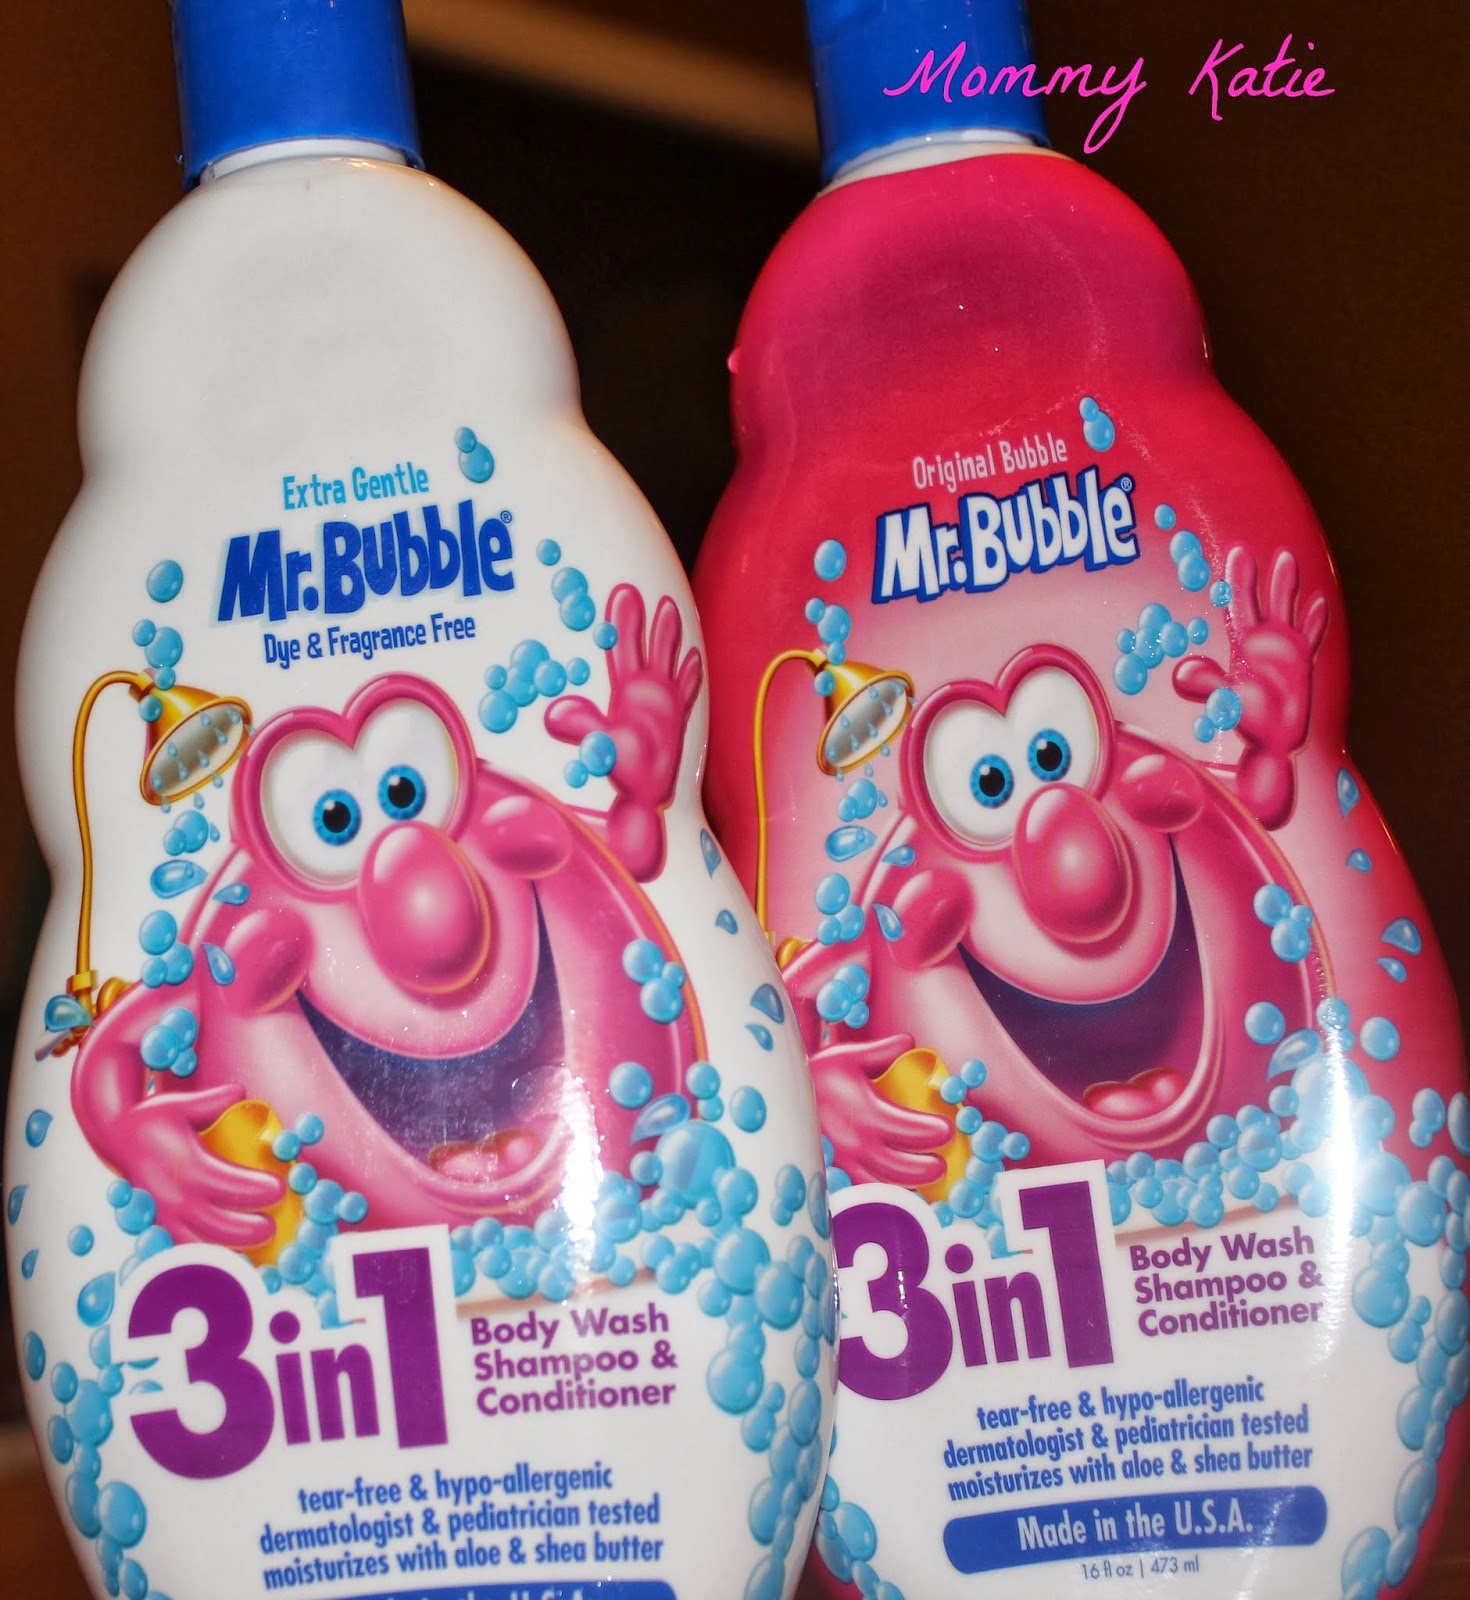 Mommy Katie: Bathing Fun With Mr. Bubble 3 in 1 Body Wash